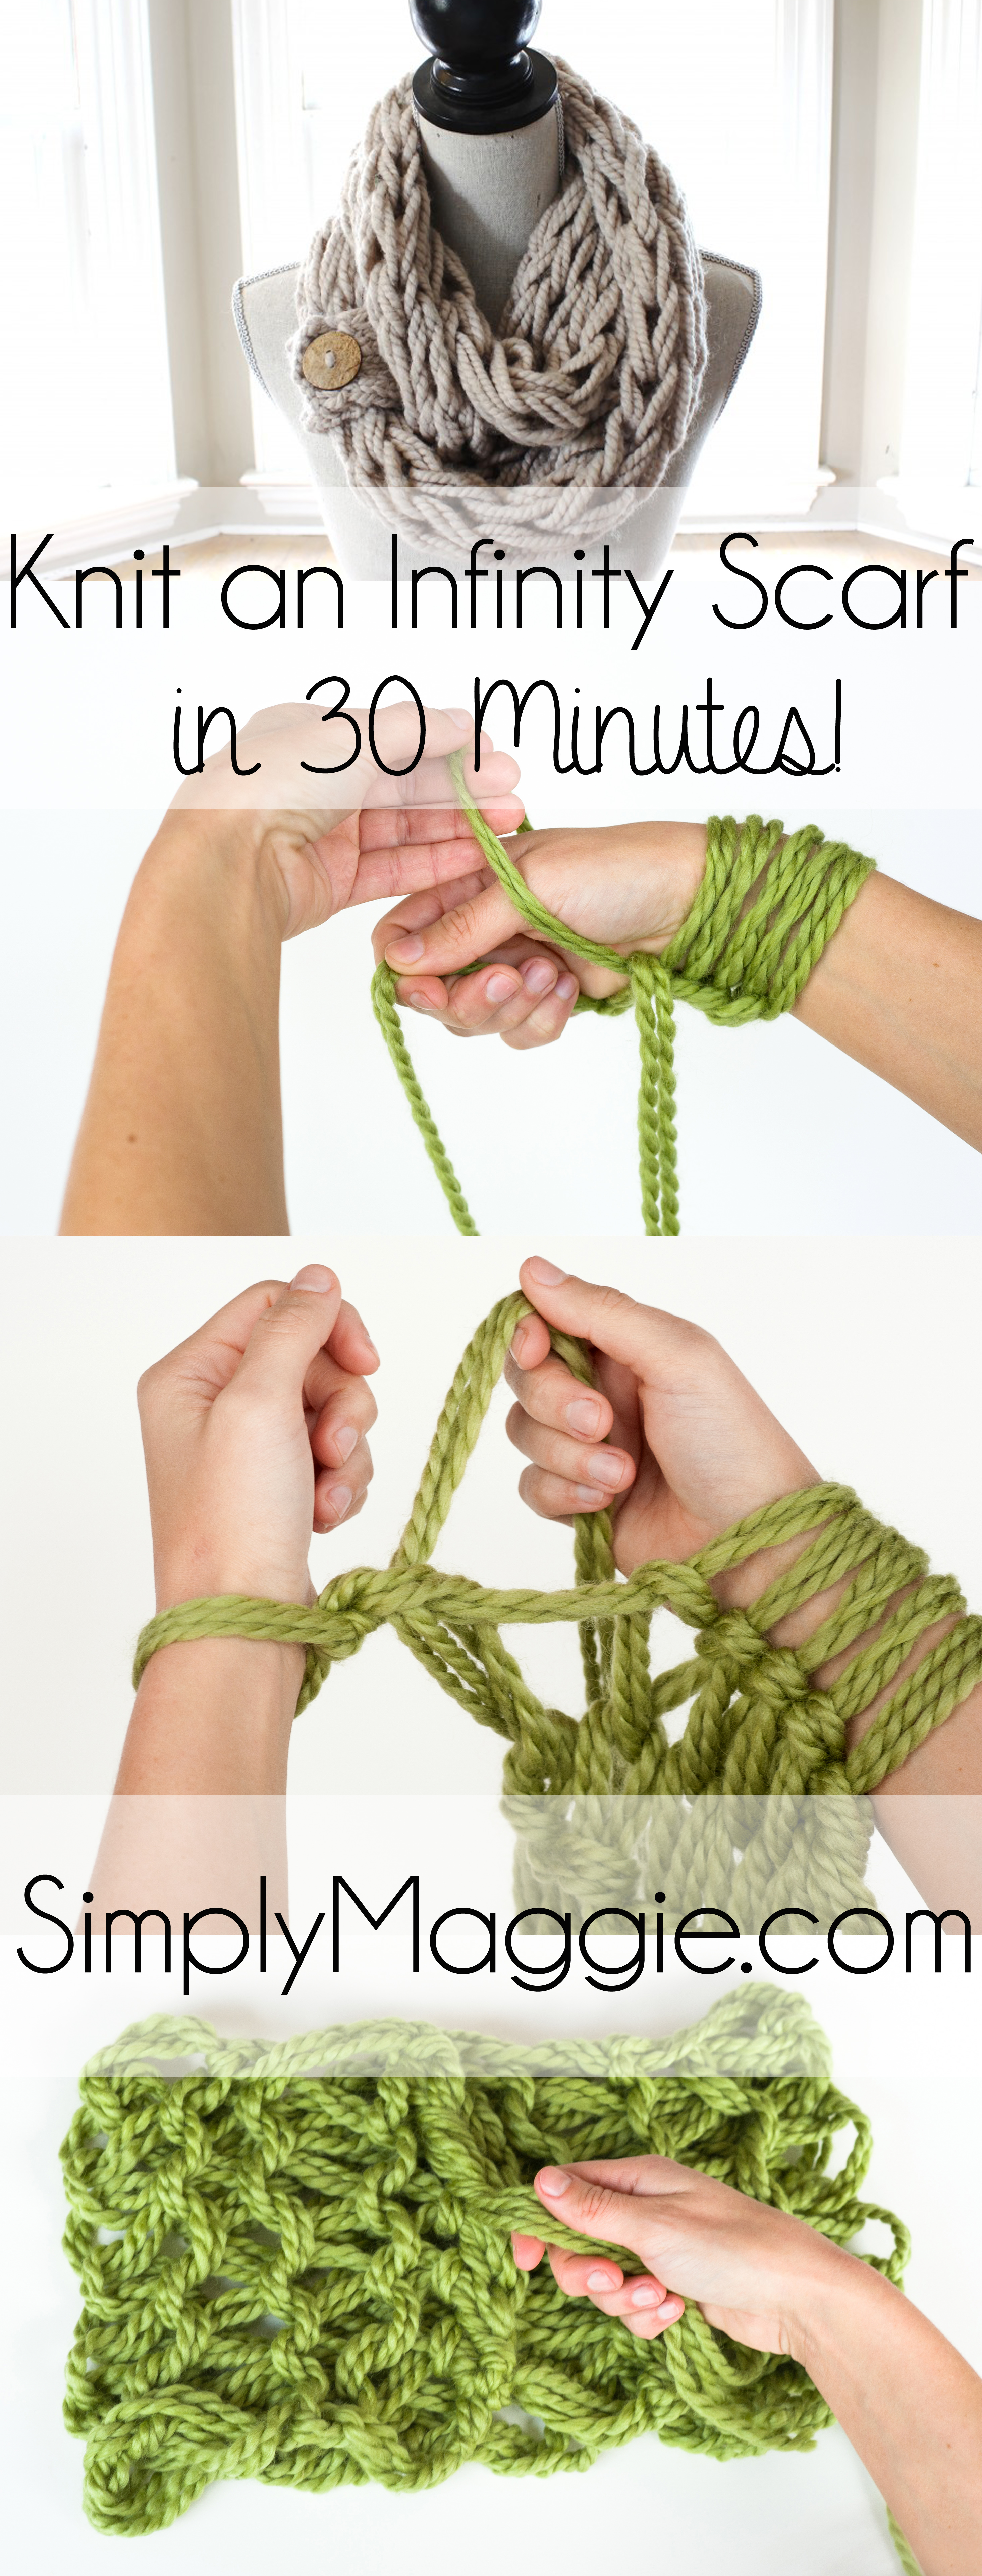 Knitting With Your Arms Instructions : The basics of arm knitting simplymaggie